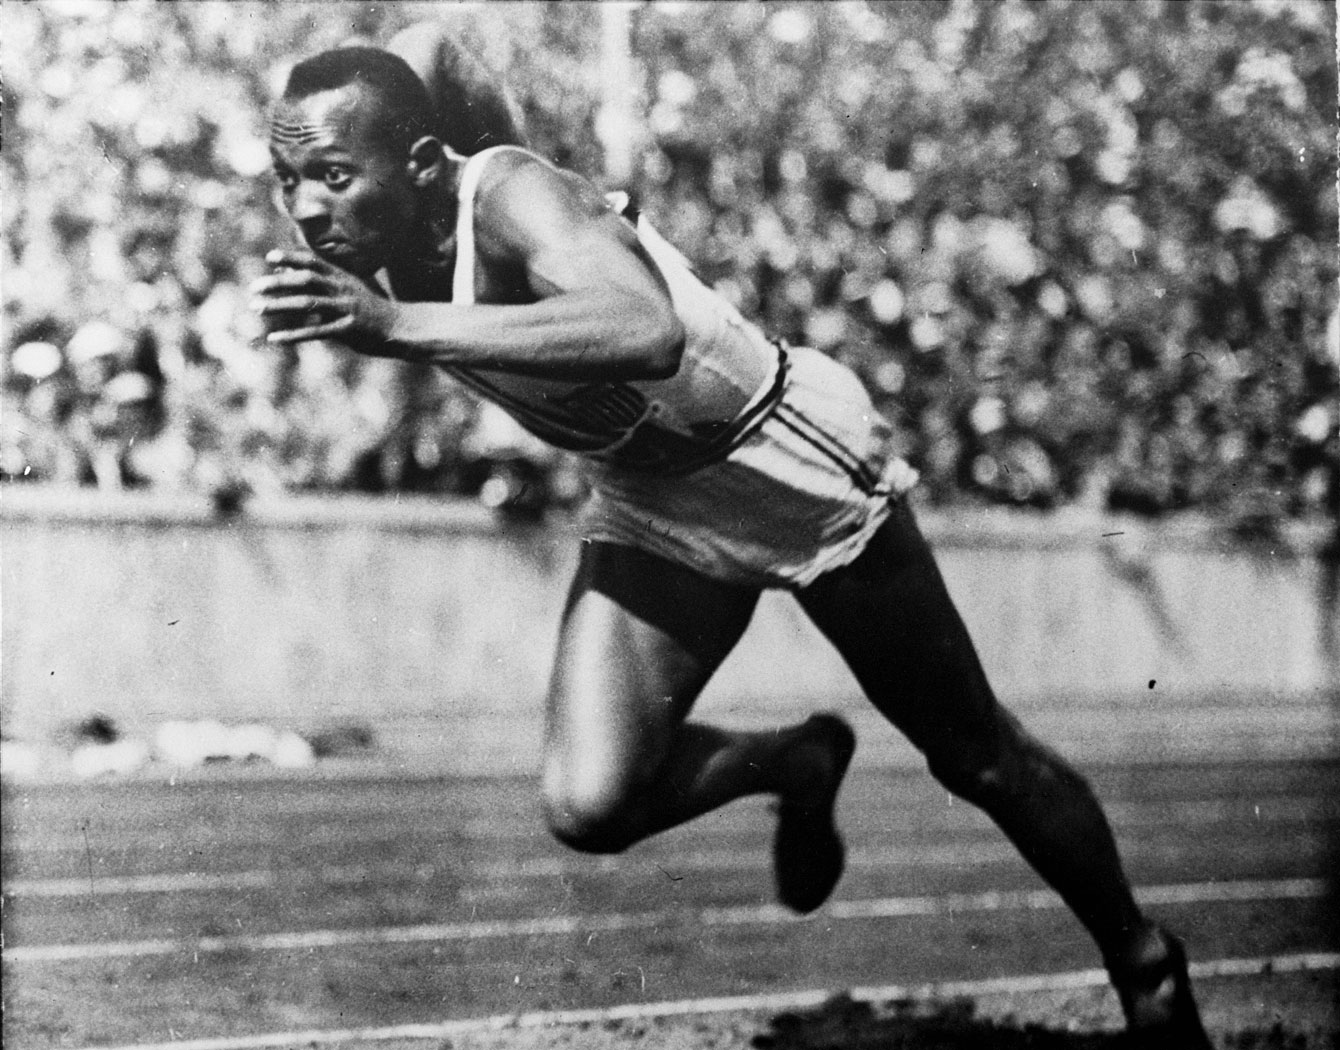 Jesse Owens takes off in a 200m preliminary at Berlin 1936.